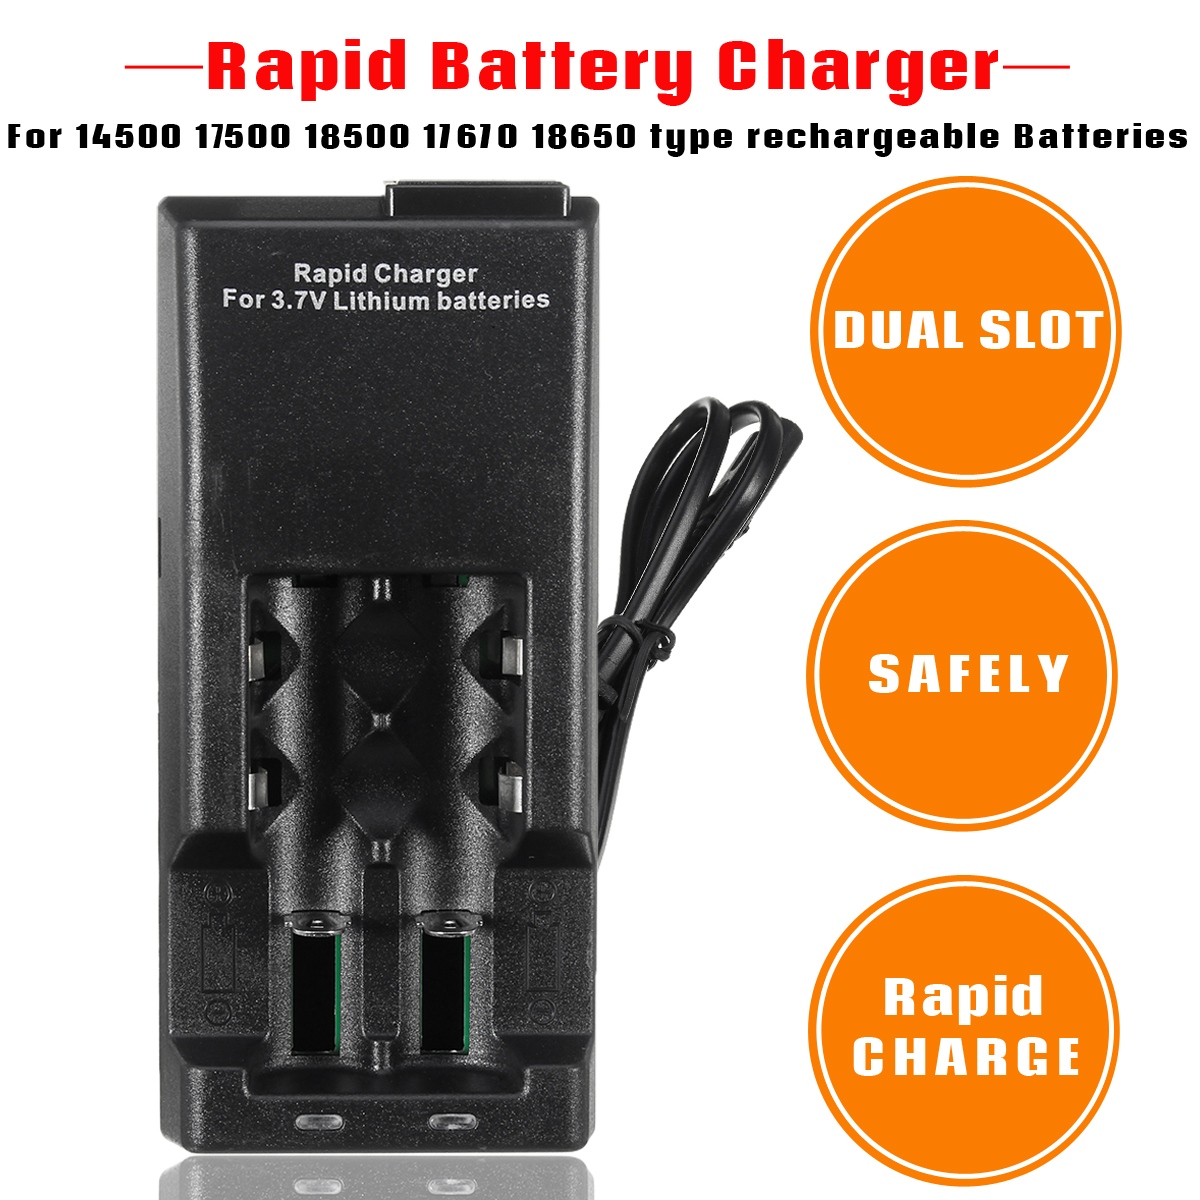 Rapid Dual Slot Battery Charger For 14500 17500 18500 17670 18650 Lithium Batteries